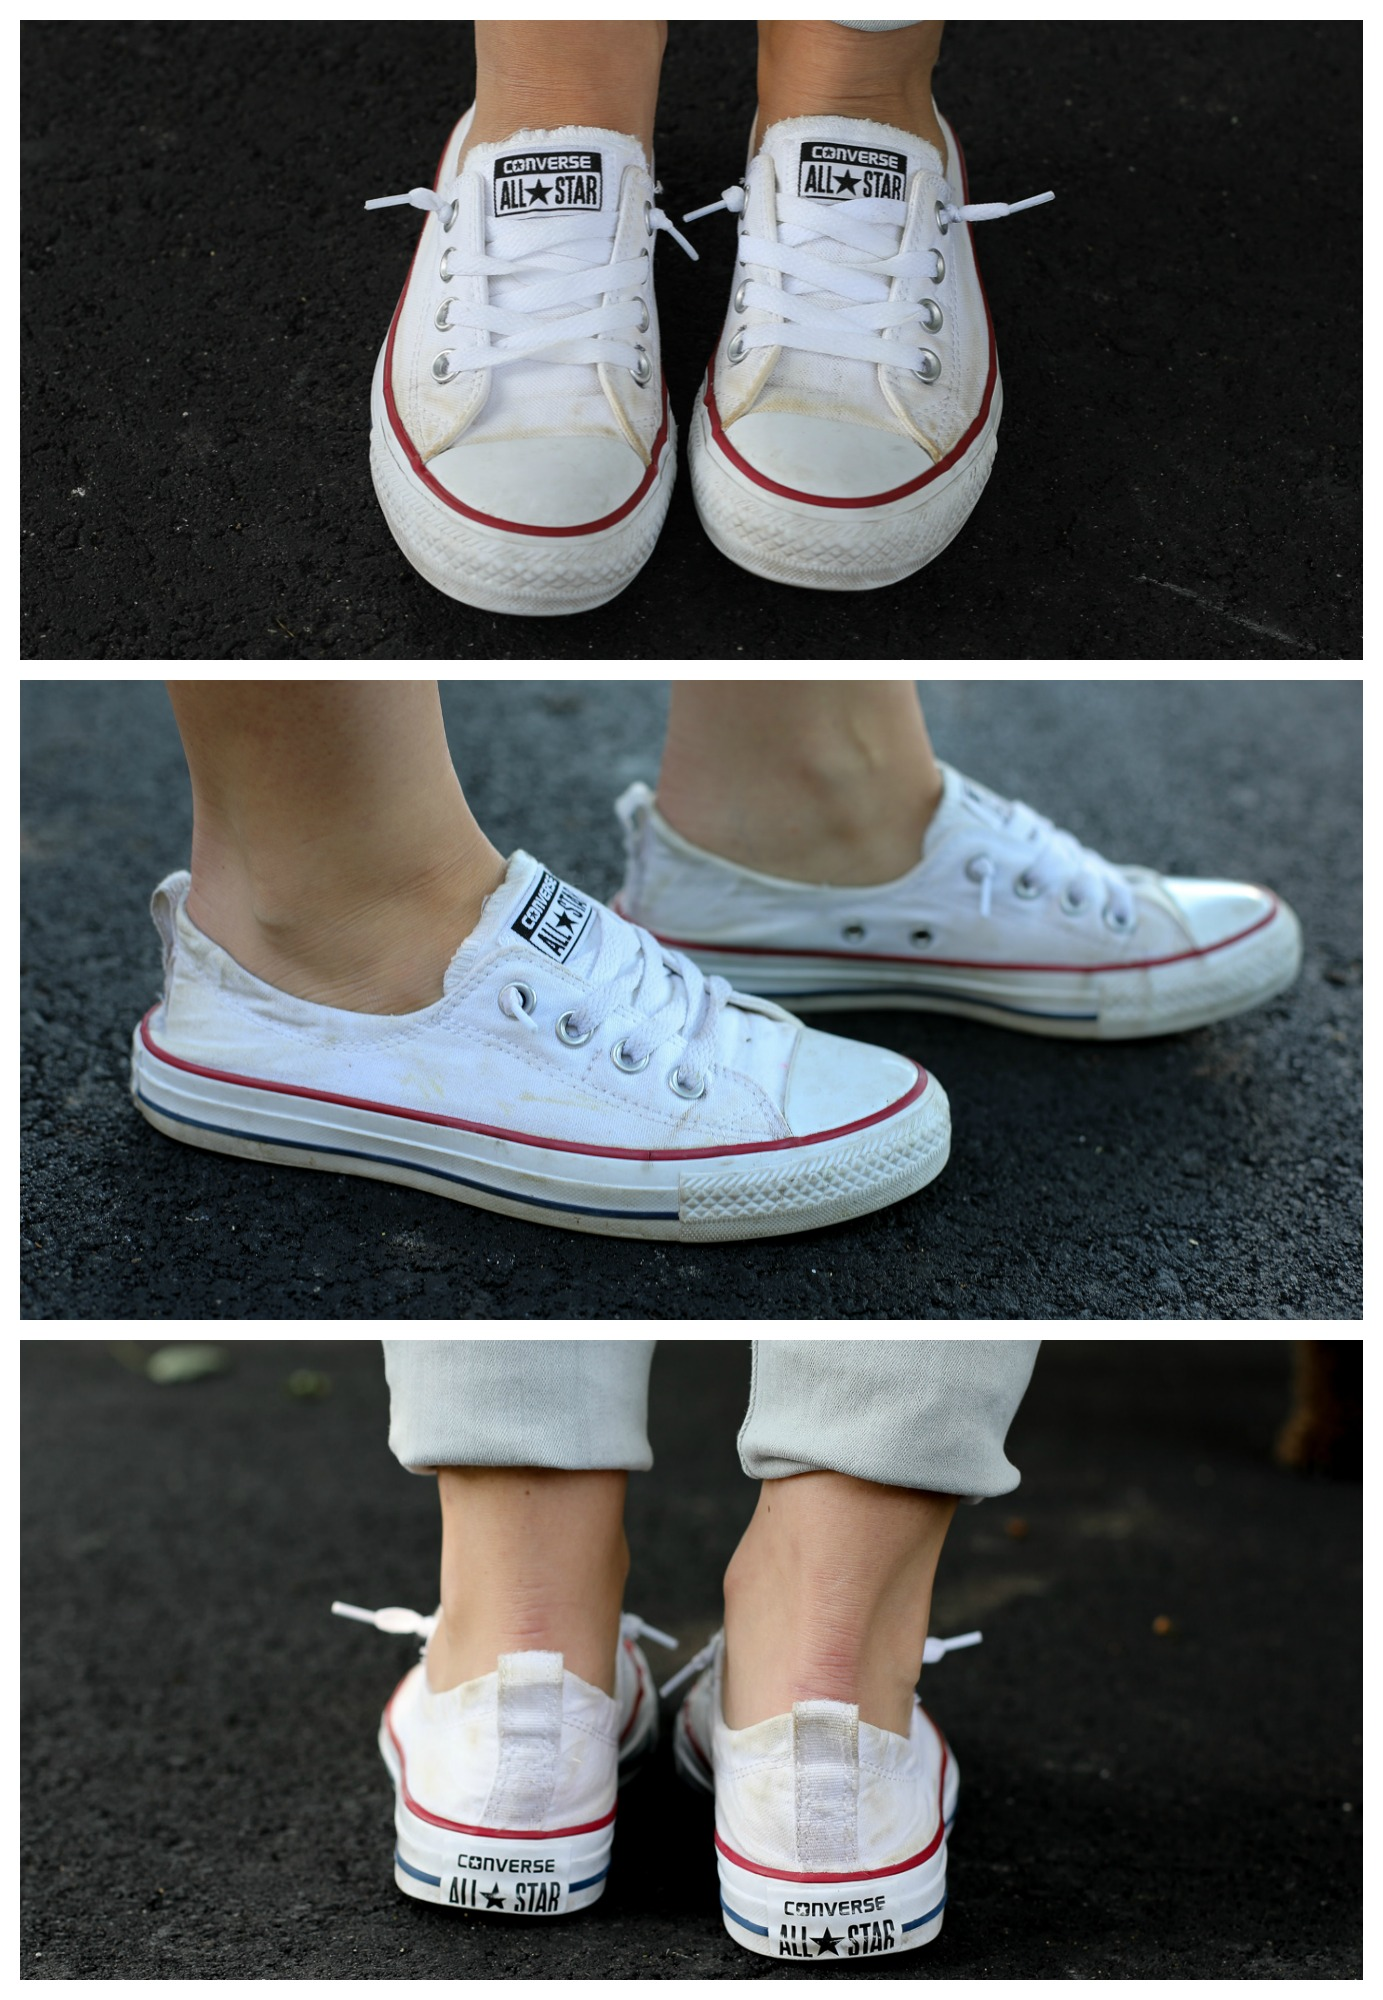 0d4d6a801543 How to Clean Your Converse  6 Methods Put To The Test!  - Living in ...